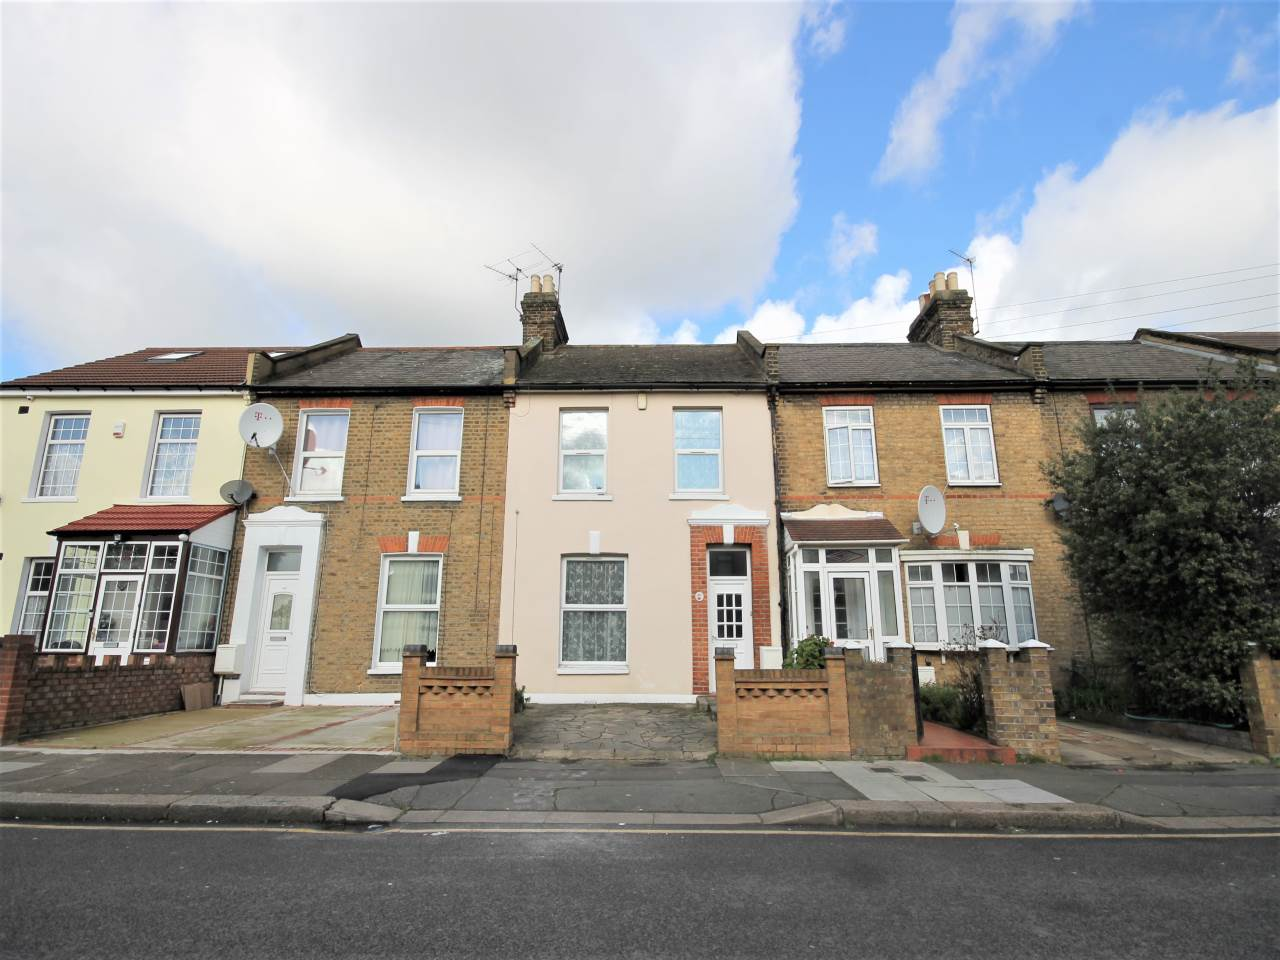 3 bed house to rent in Ilford, IG1